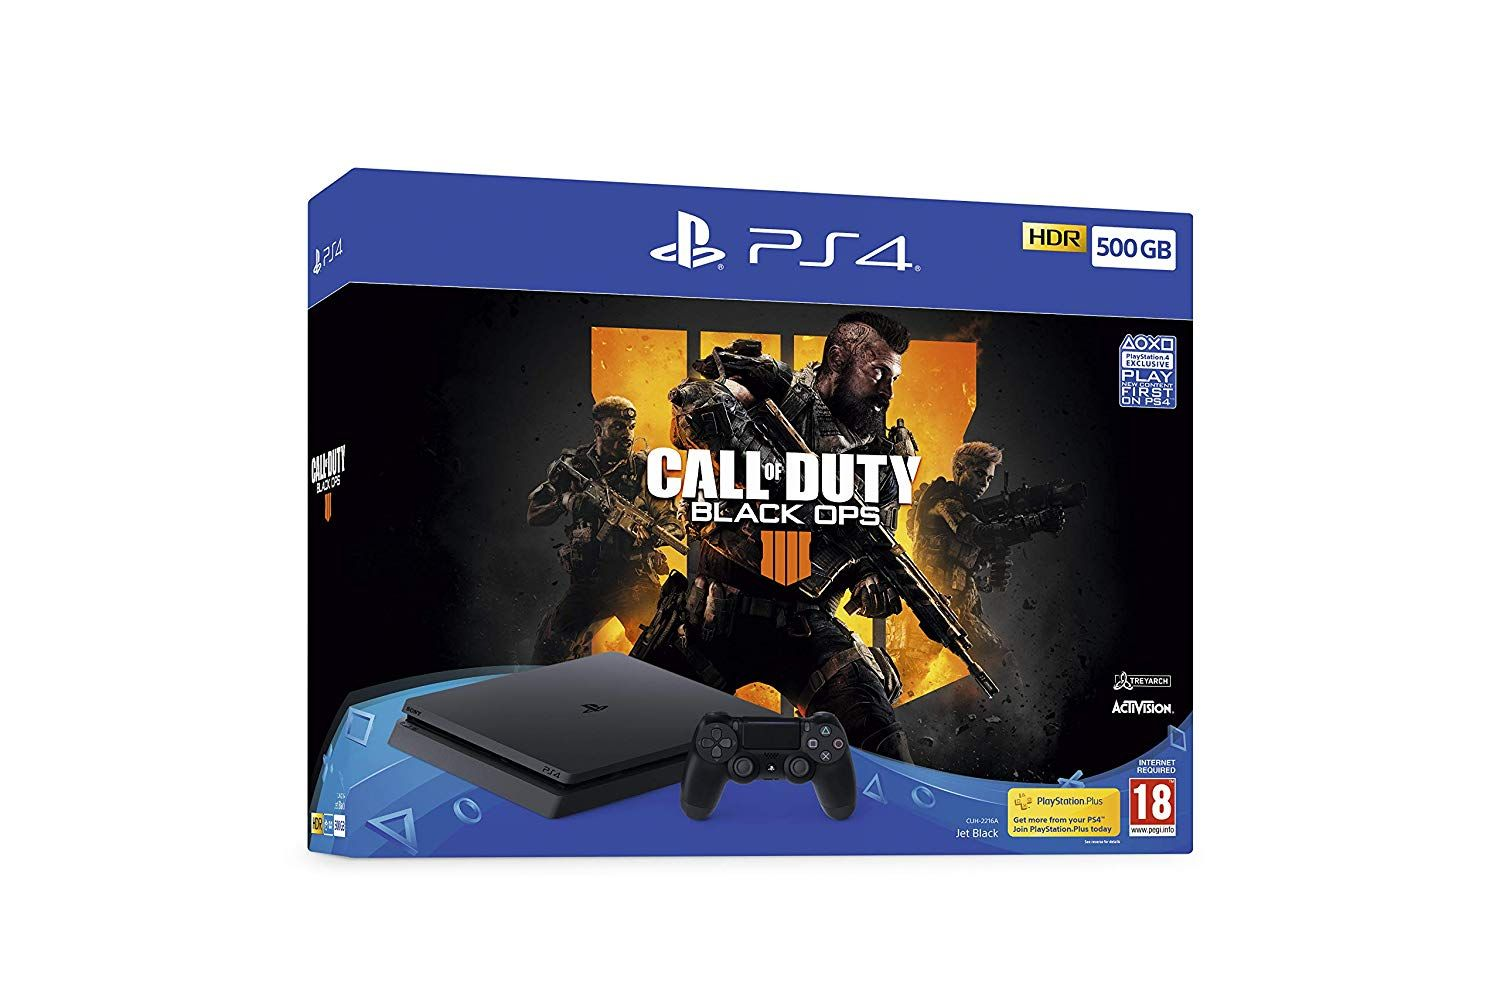 PlayStation 4 500GB with Call of Duty Black Ops 4 (PS4)